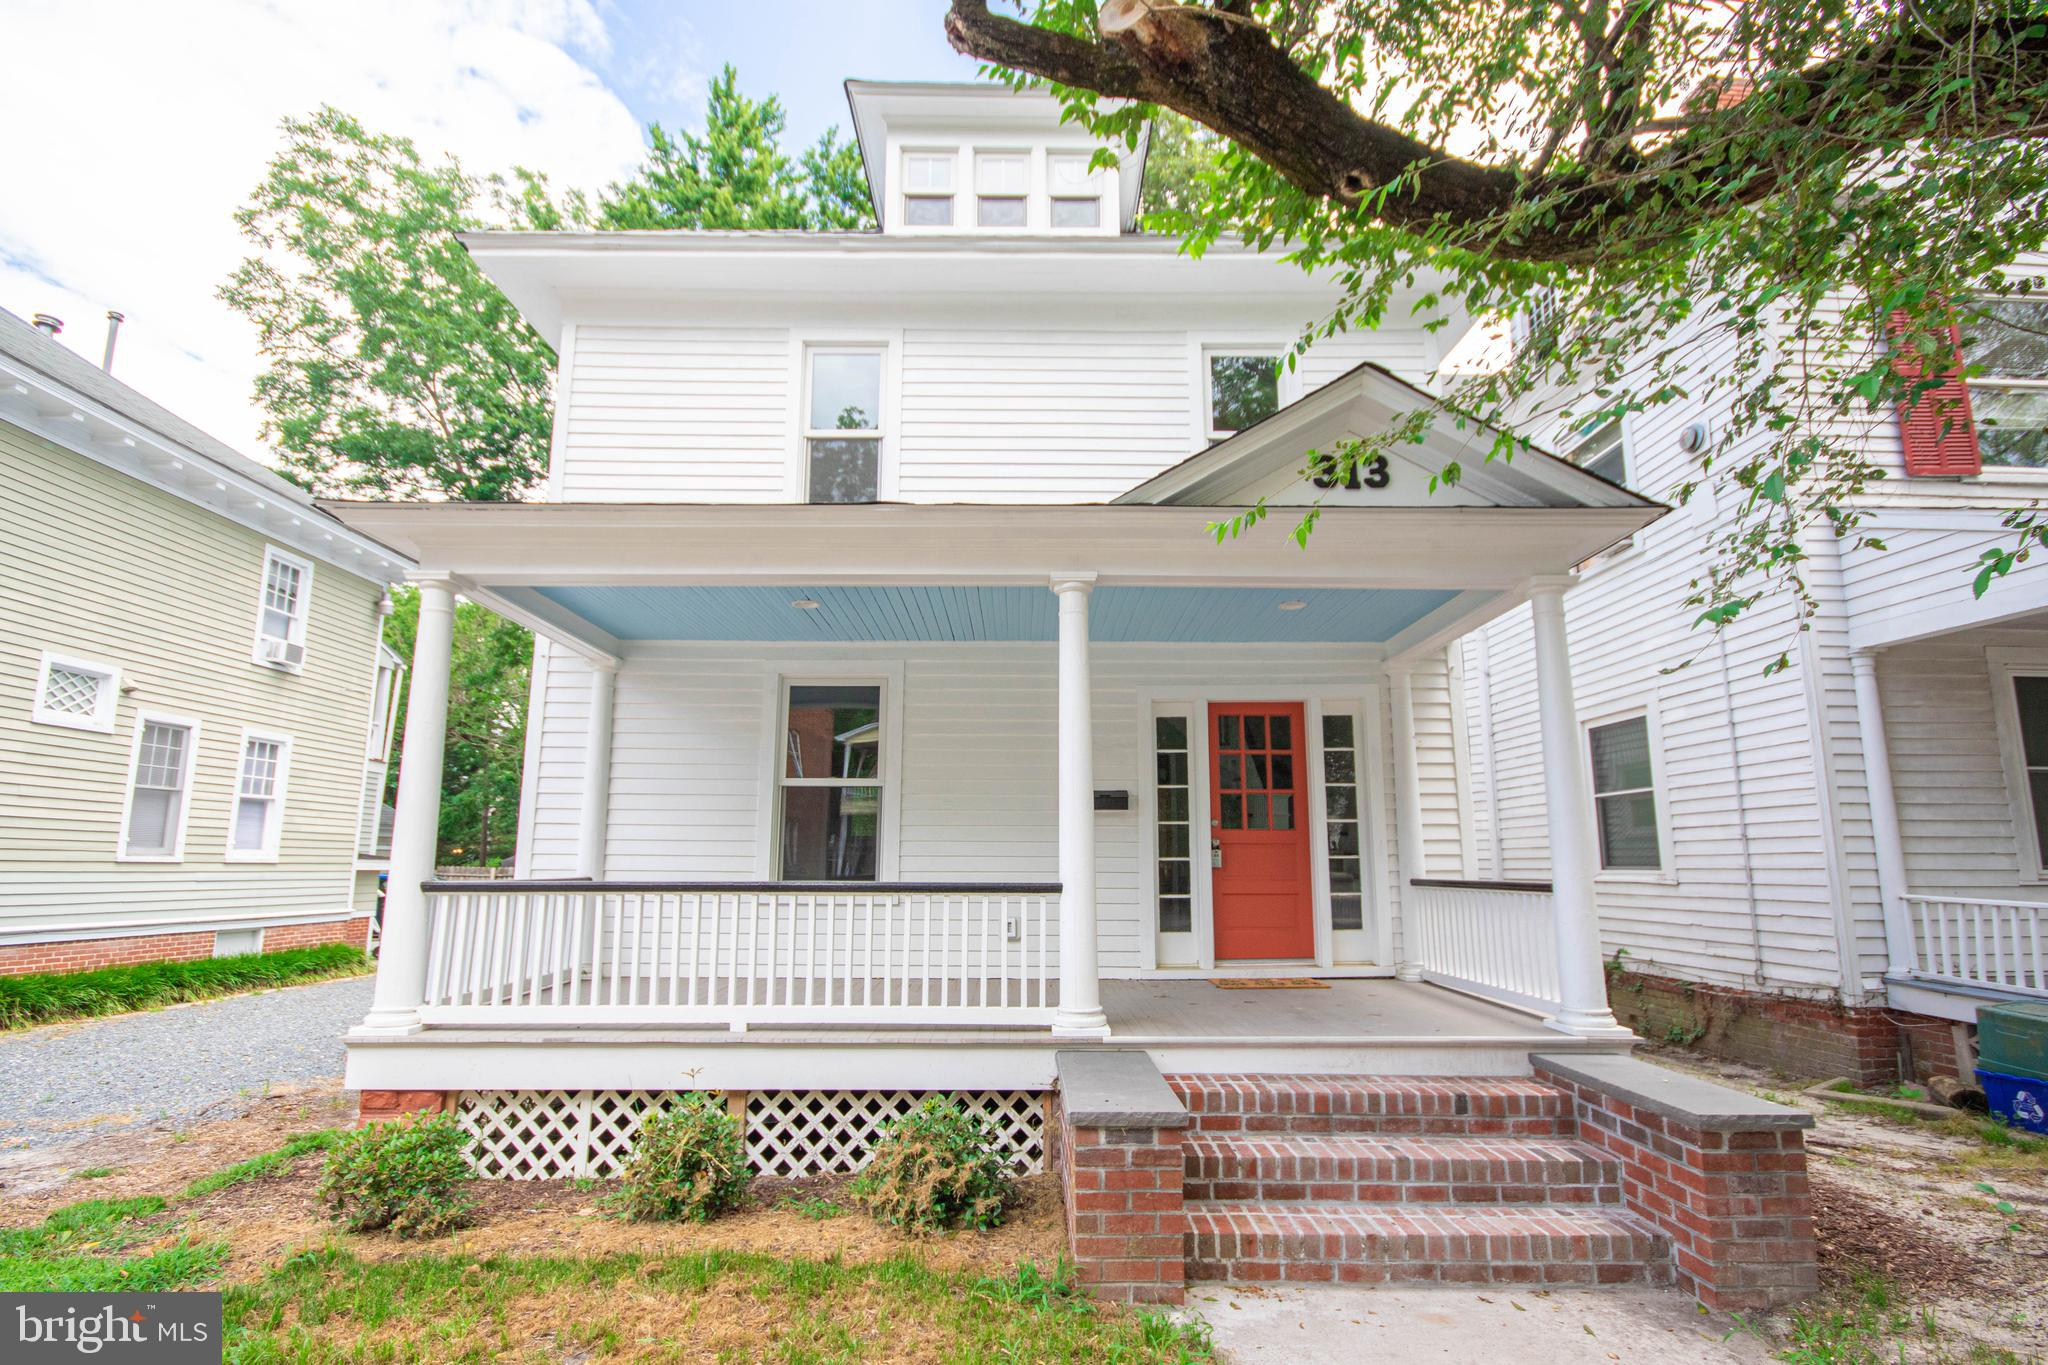 This fully renovated, 3 bedroom, 2 bath home, is ready for its new owner! You'll love the historic c